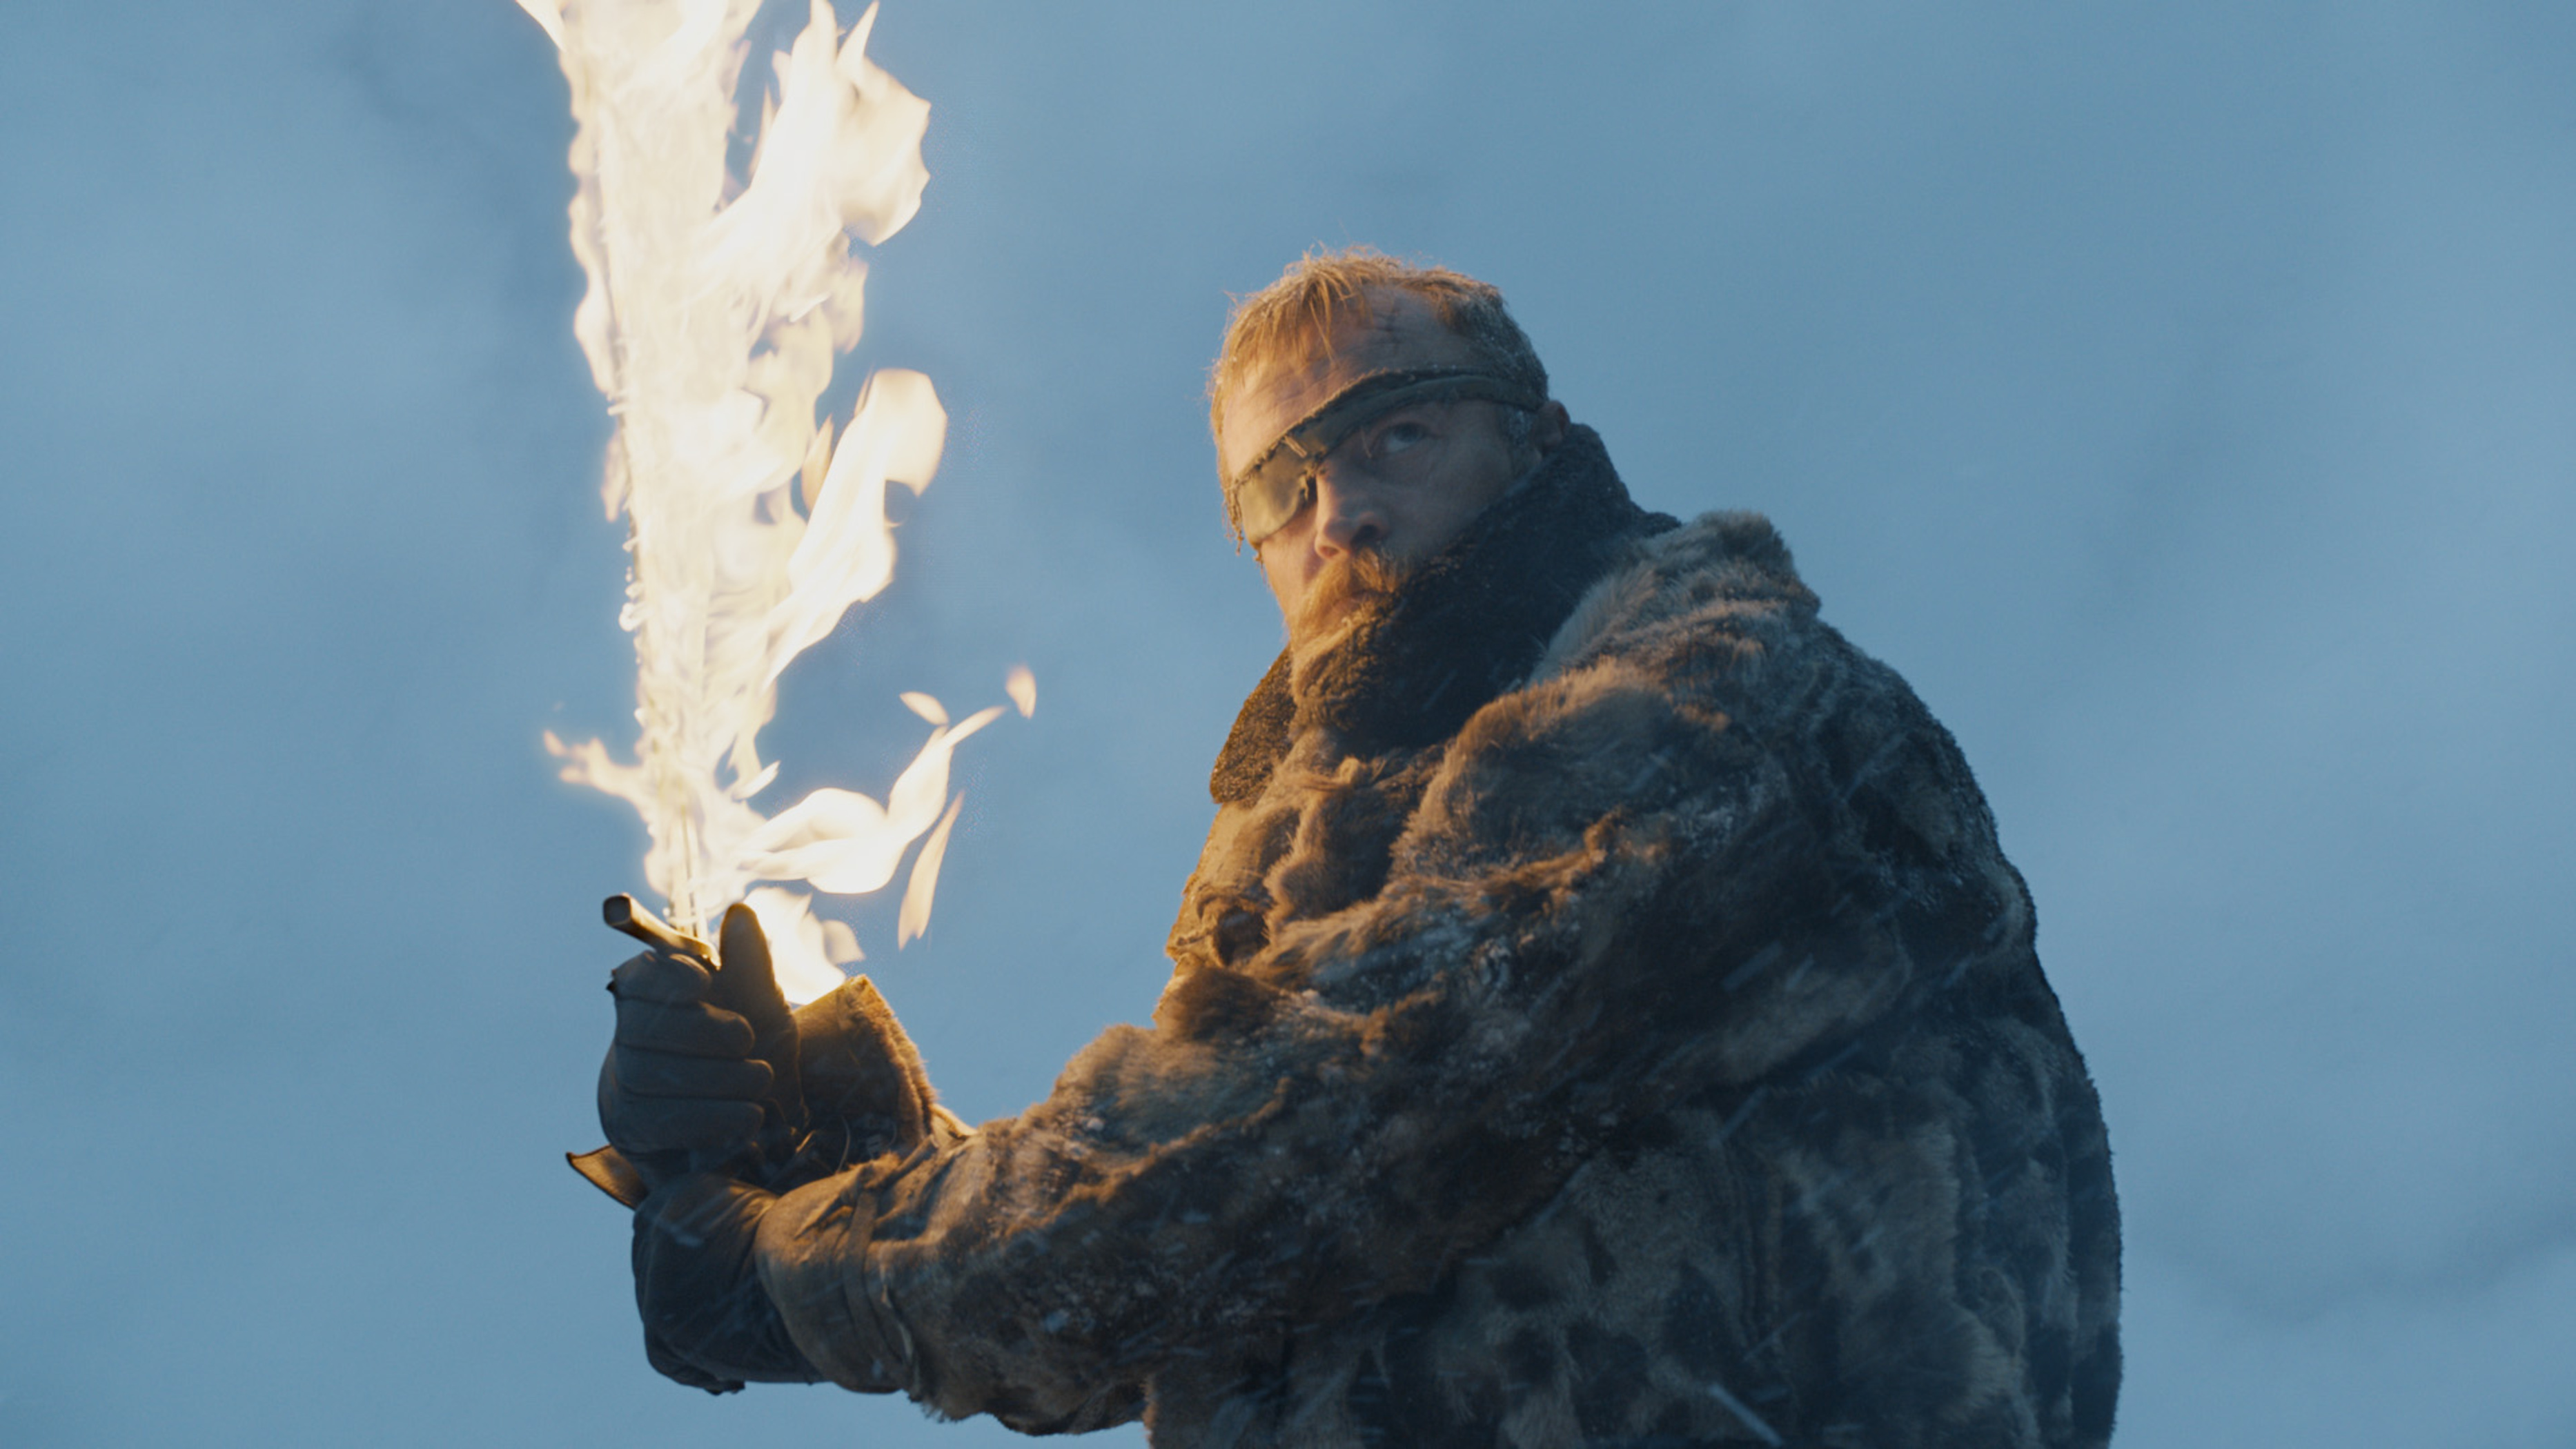 "3af59c767836980b246e0e339f9f14b717c512a953a41fe6f07c871eef7ec8e1 Recapping Game of Thrones: Winter Comes Too Fast ""Beyond the Wall"""